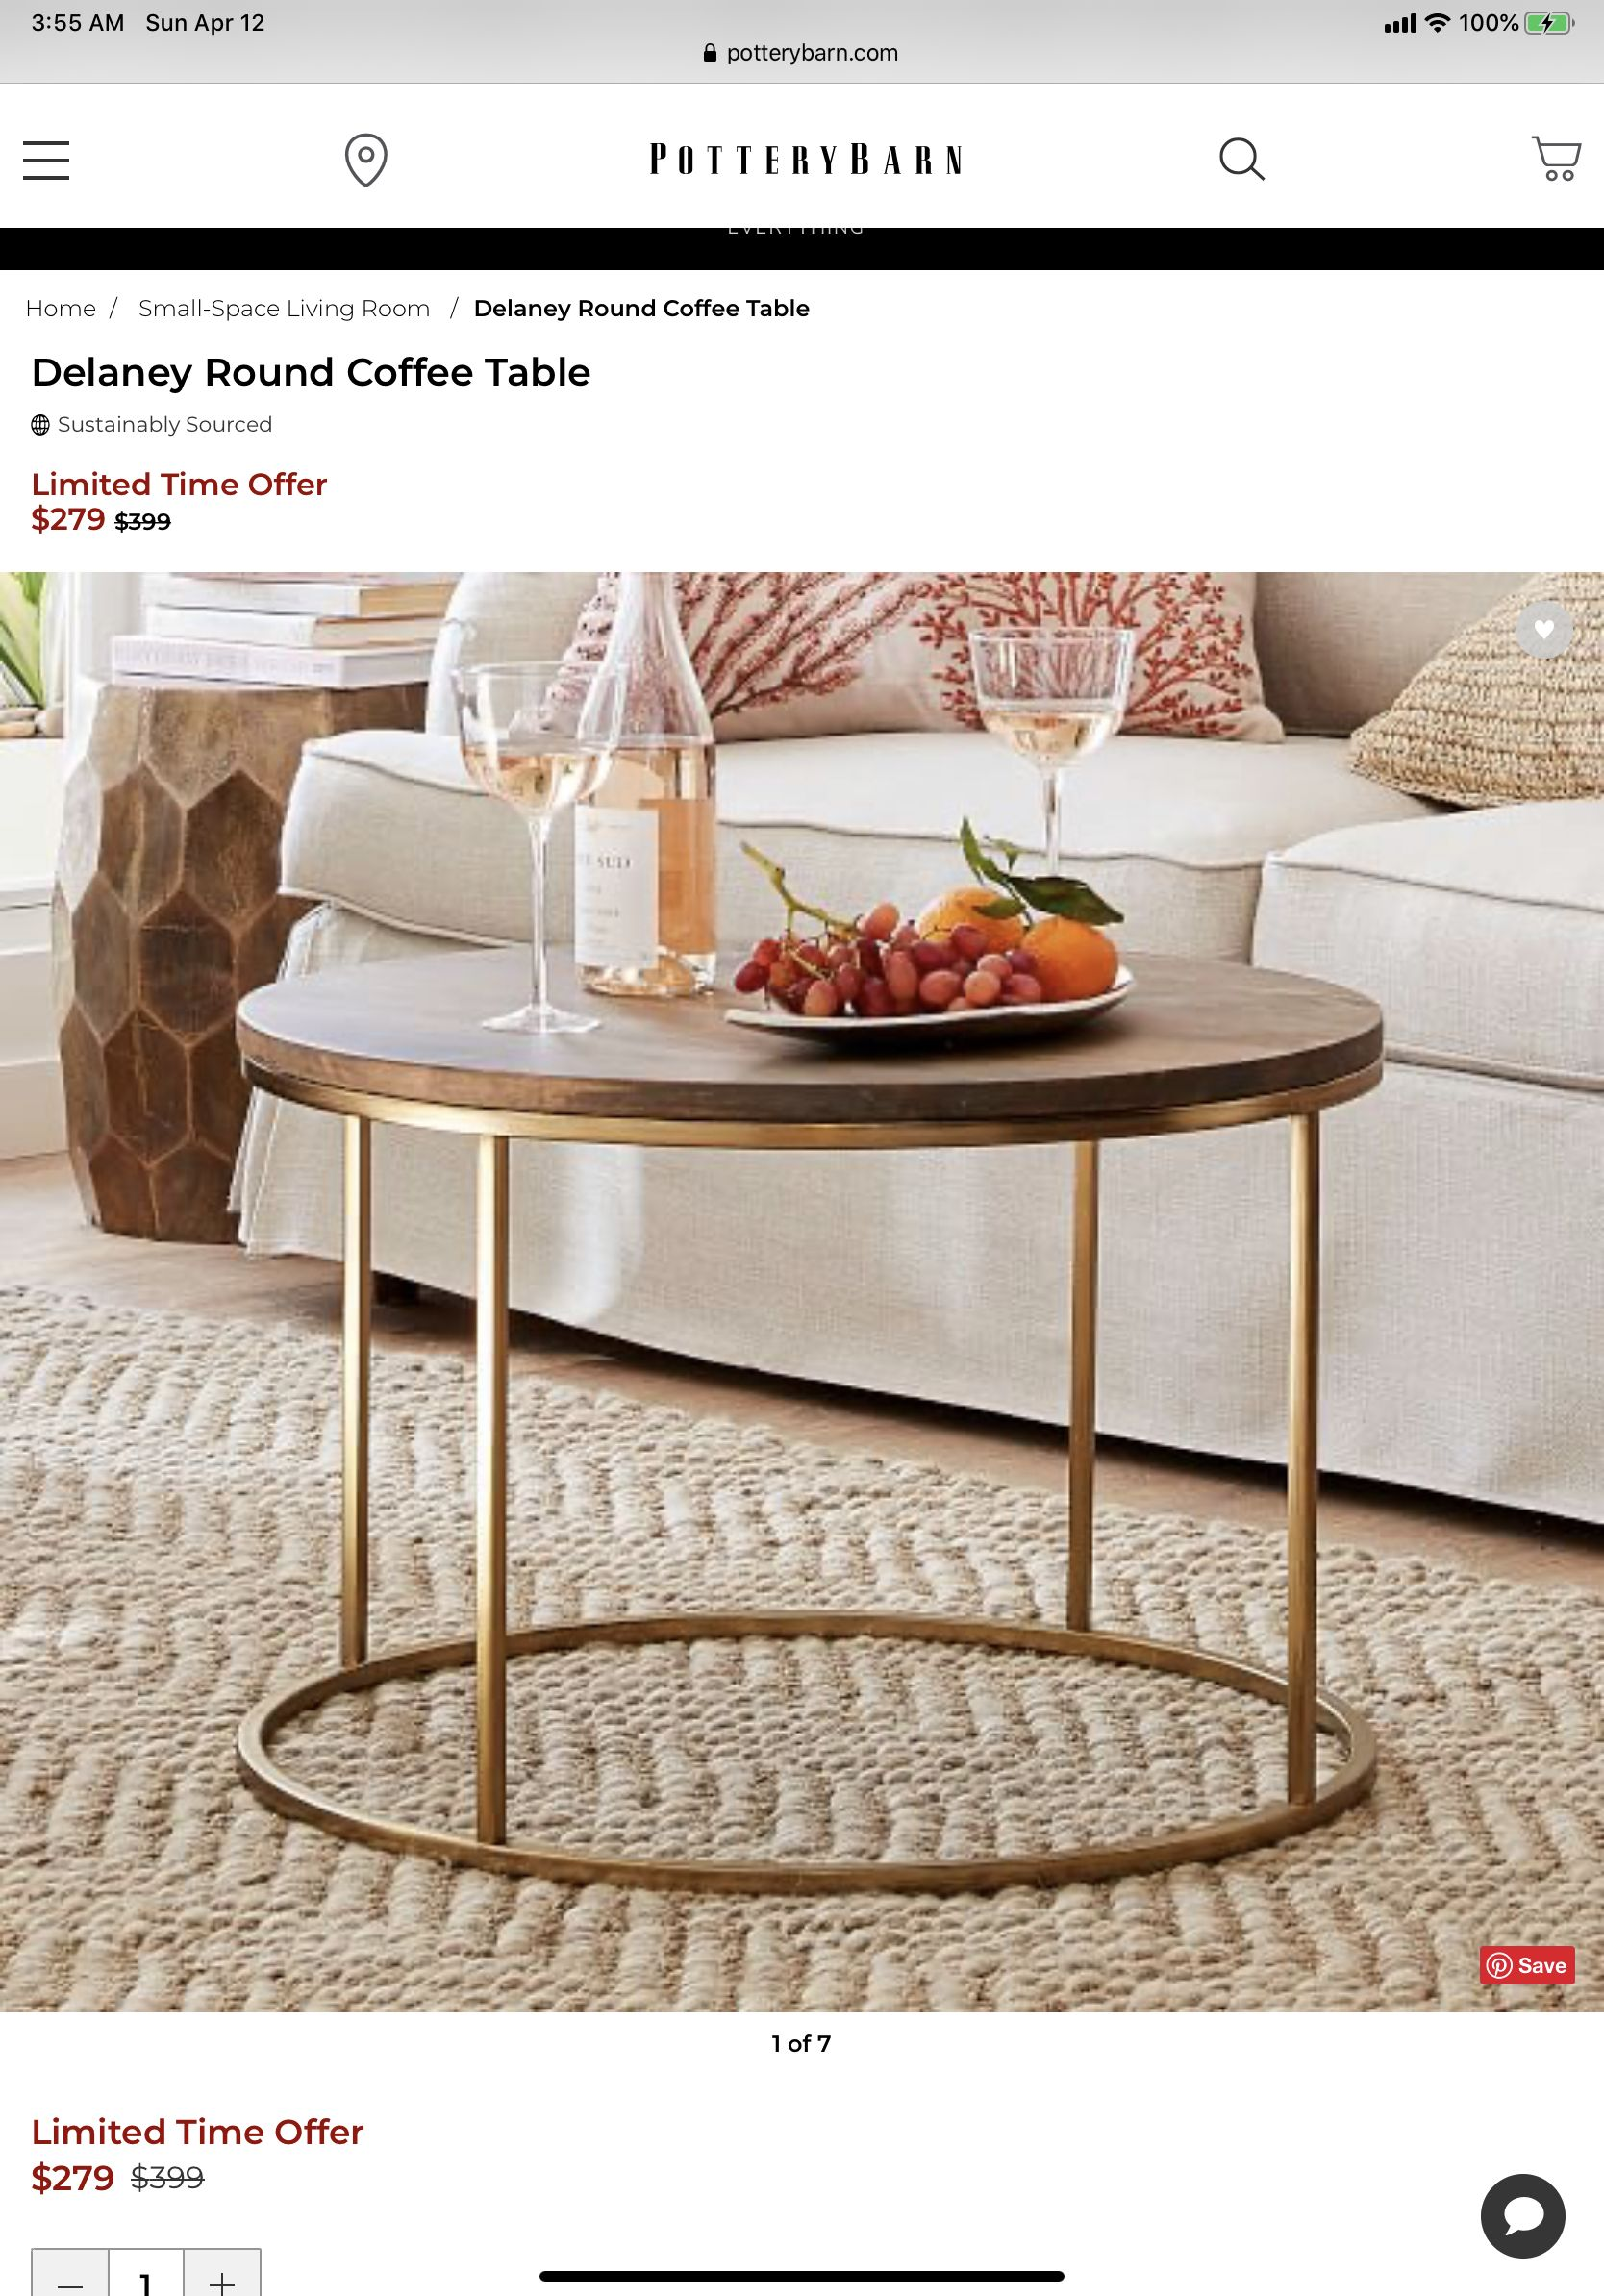 Pin By Julie Ryan On Coffee Table Coffee Table Table Decor [ 2388 x 1668 Pixel ]